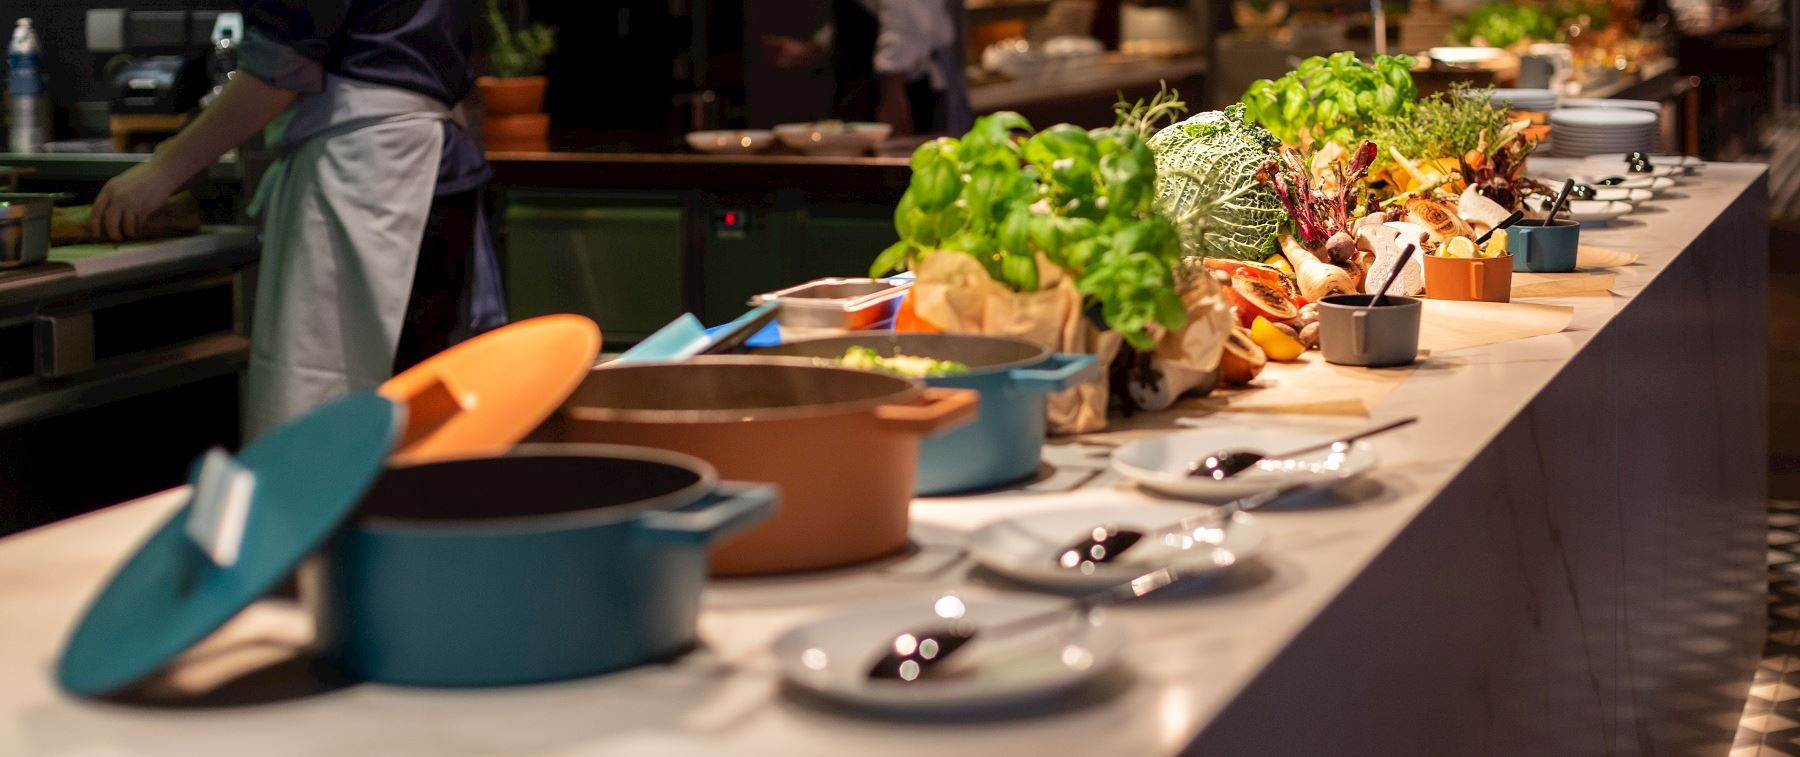 Experience reinvented German cuisine while enjoying special events